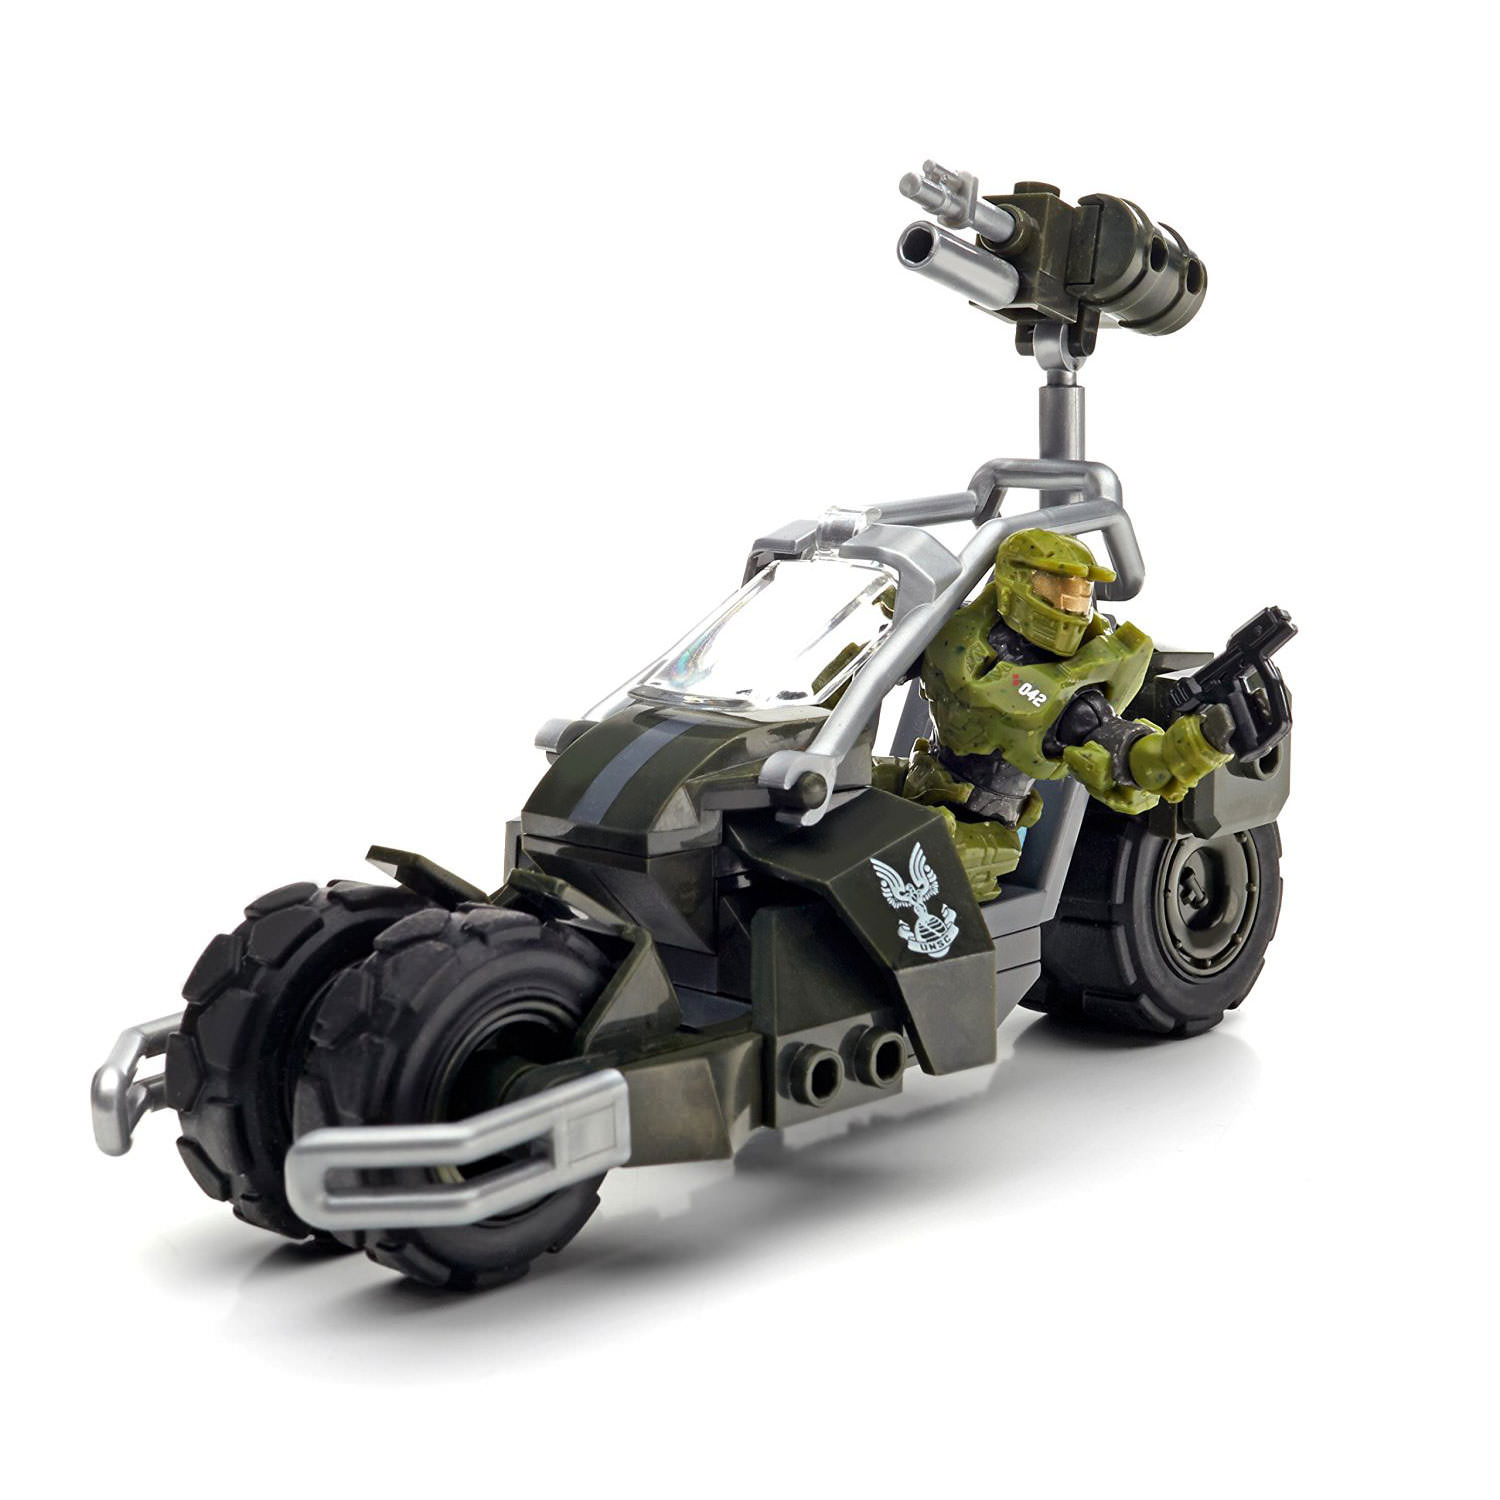 toys r us pay scale with Mega Bloks Halo Unsc Jackrabbit Blitz on Ed Sheeran Tattoos also Fandom Friday 5 Joker Action Figures To Add To Your Collection moreover Motorcycle Models Cb1000r Yellow 112 Scale Alloy Metal Diecast Models Motor Bike Miniature Race Toy For Gift Collection besides Product likewise Wht700010062awebsgl Madagascar 3 Movie Zoo Animal Soft Plush Cuddly Toy.